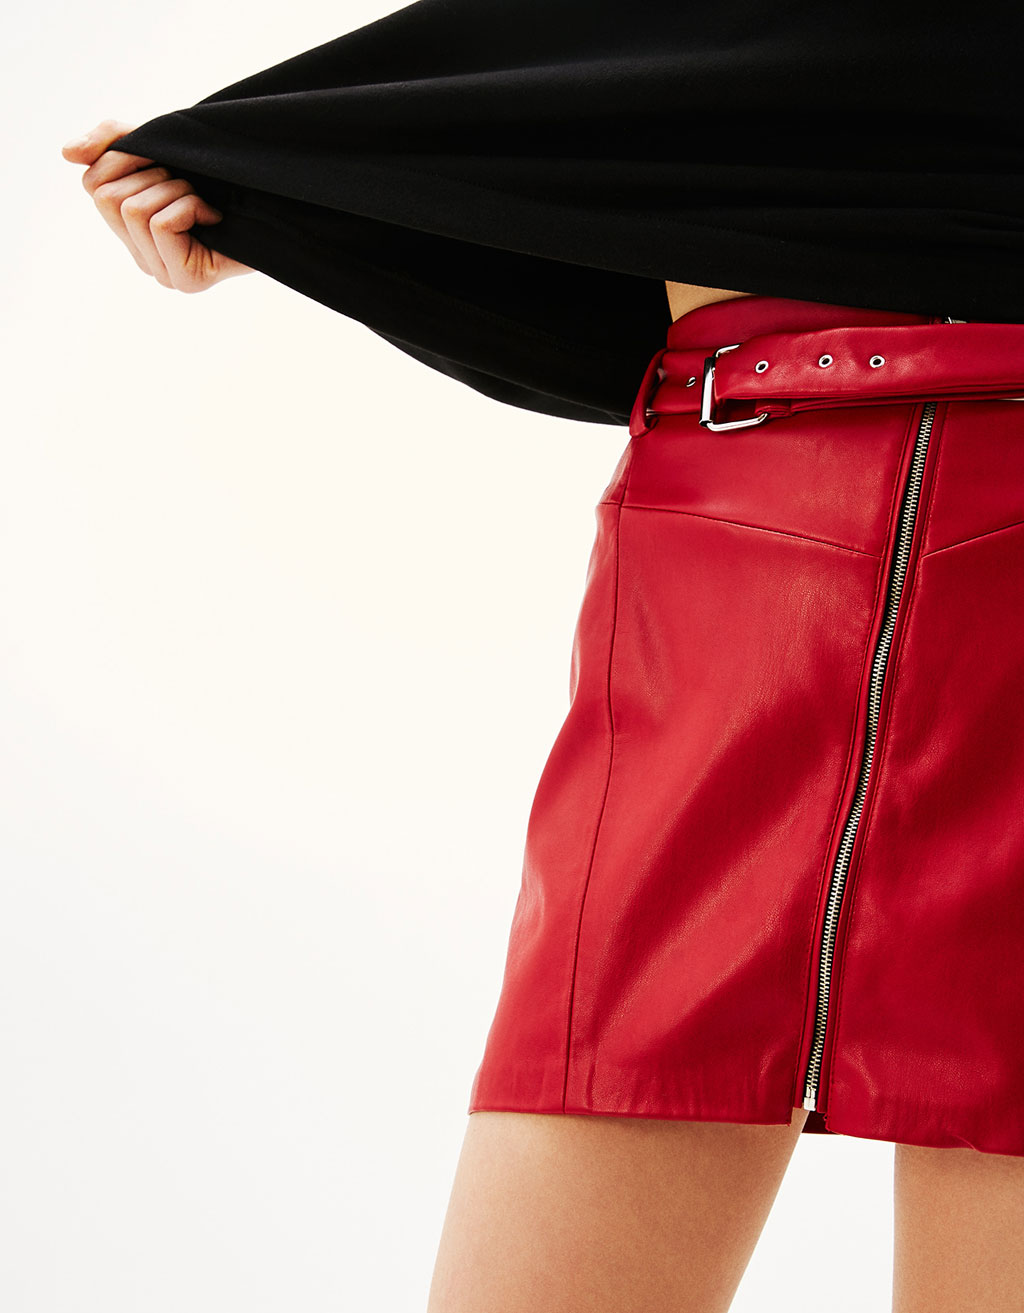 Faux leather skirt with pockets and zips